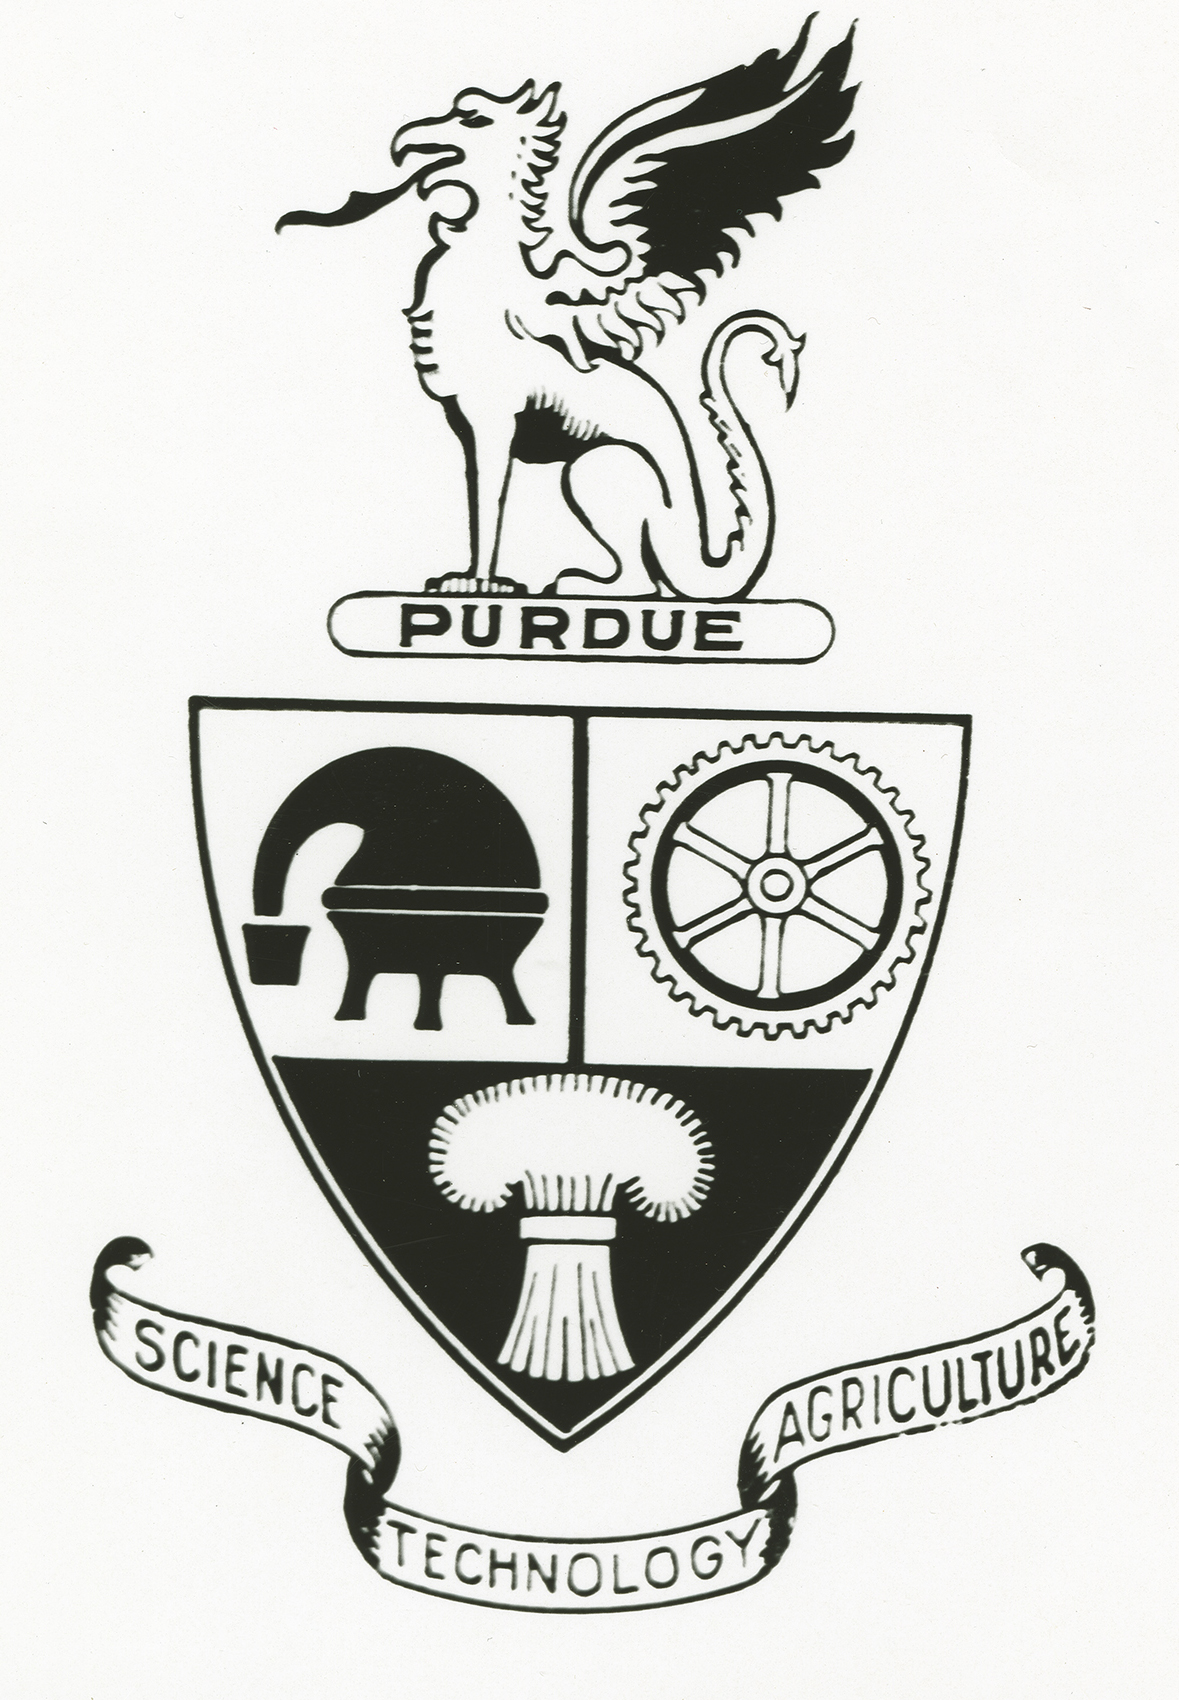 Did you know purdue seal purdue university purdue seal 1924 biocorpaavc